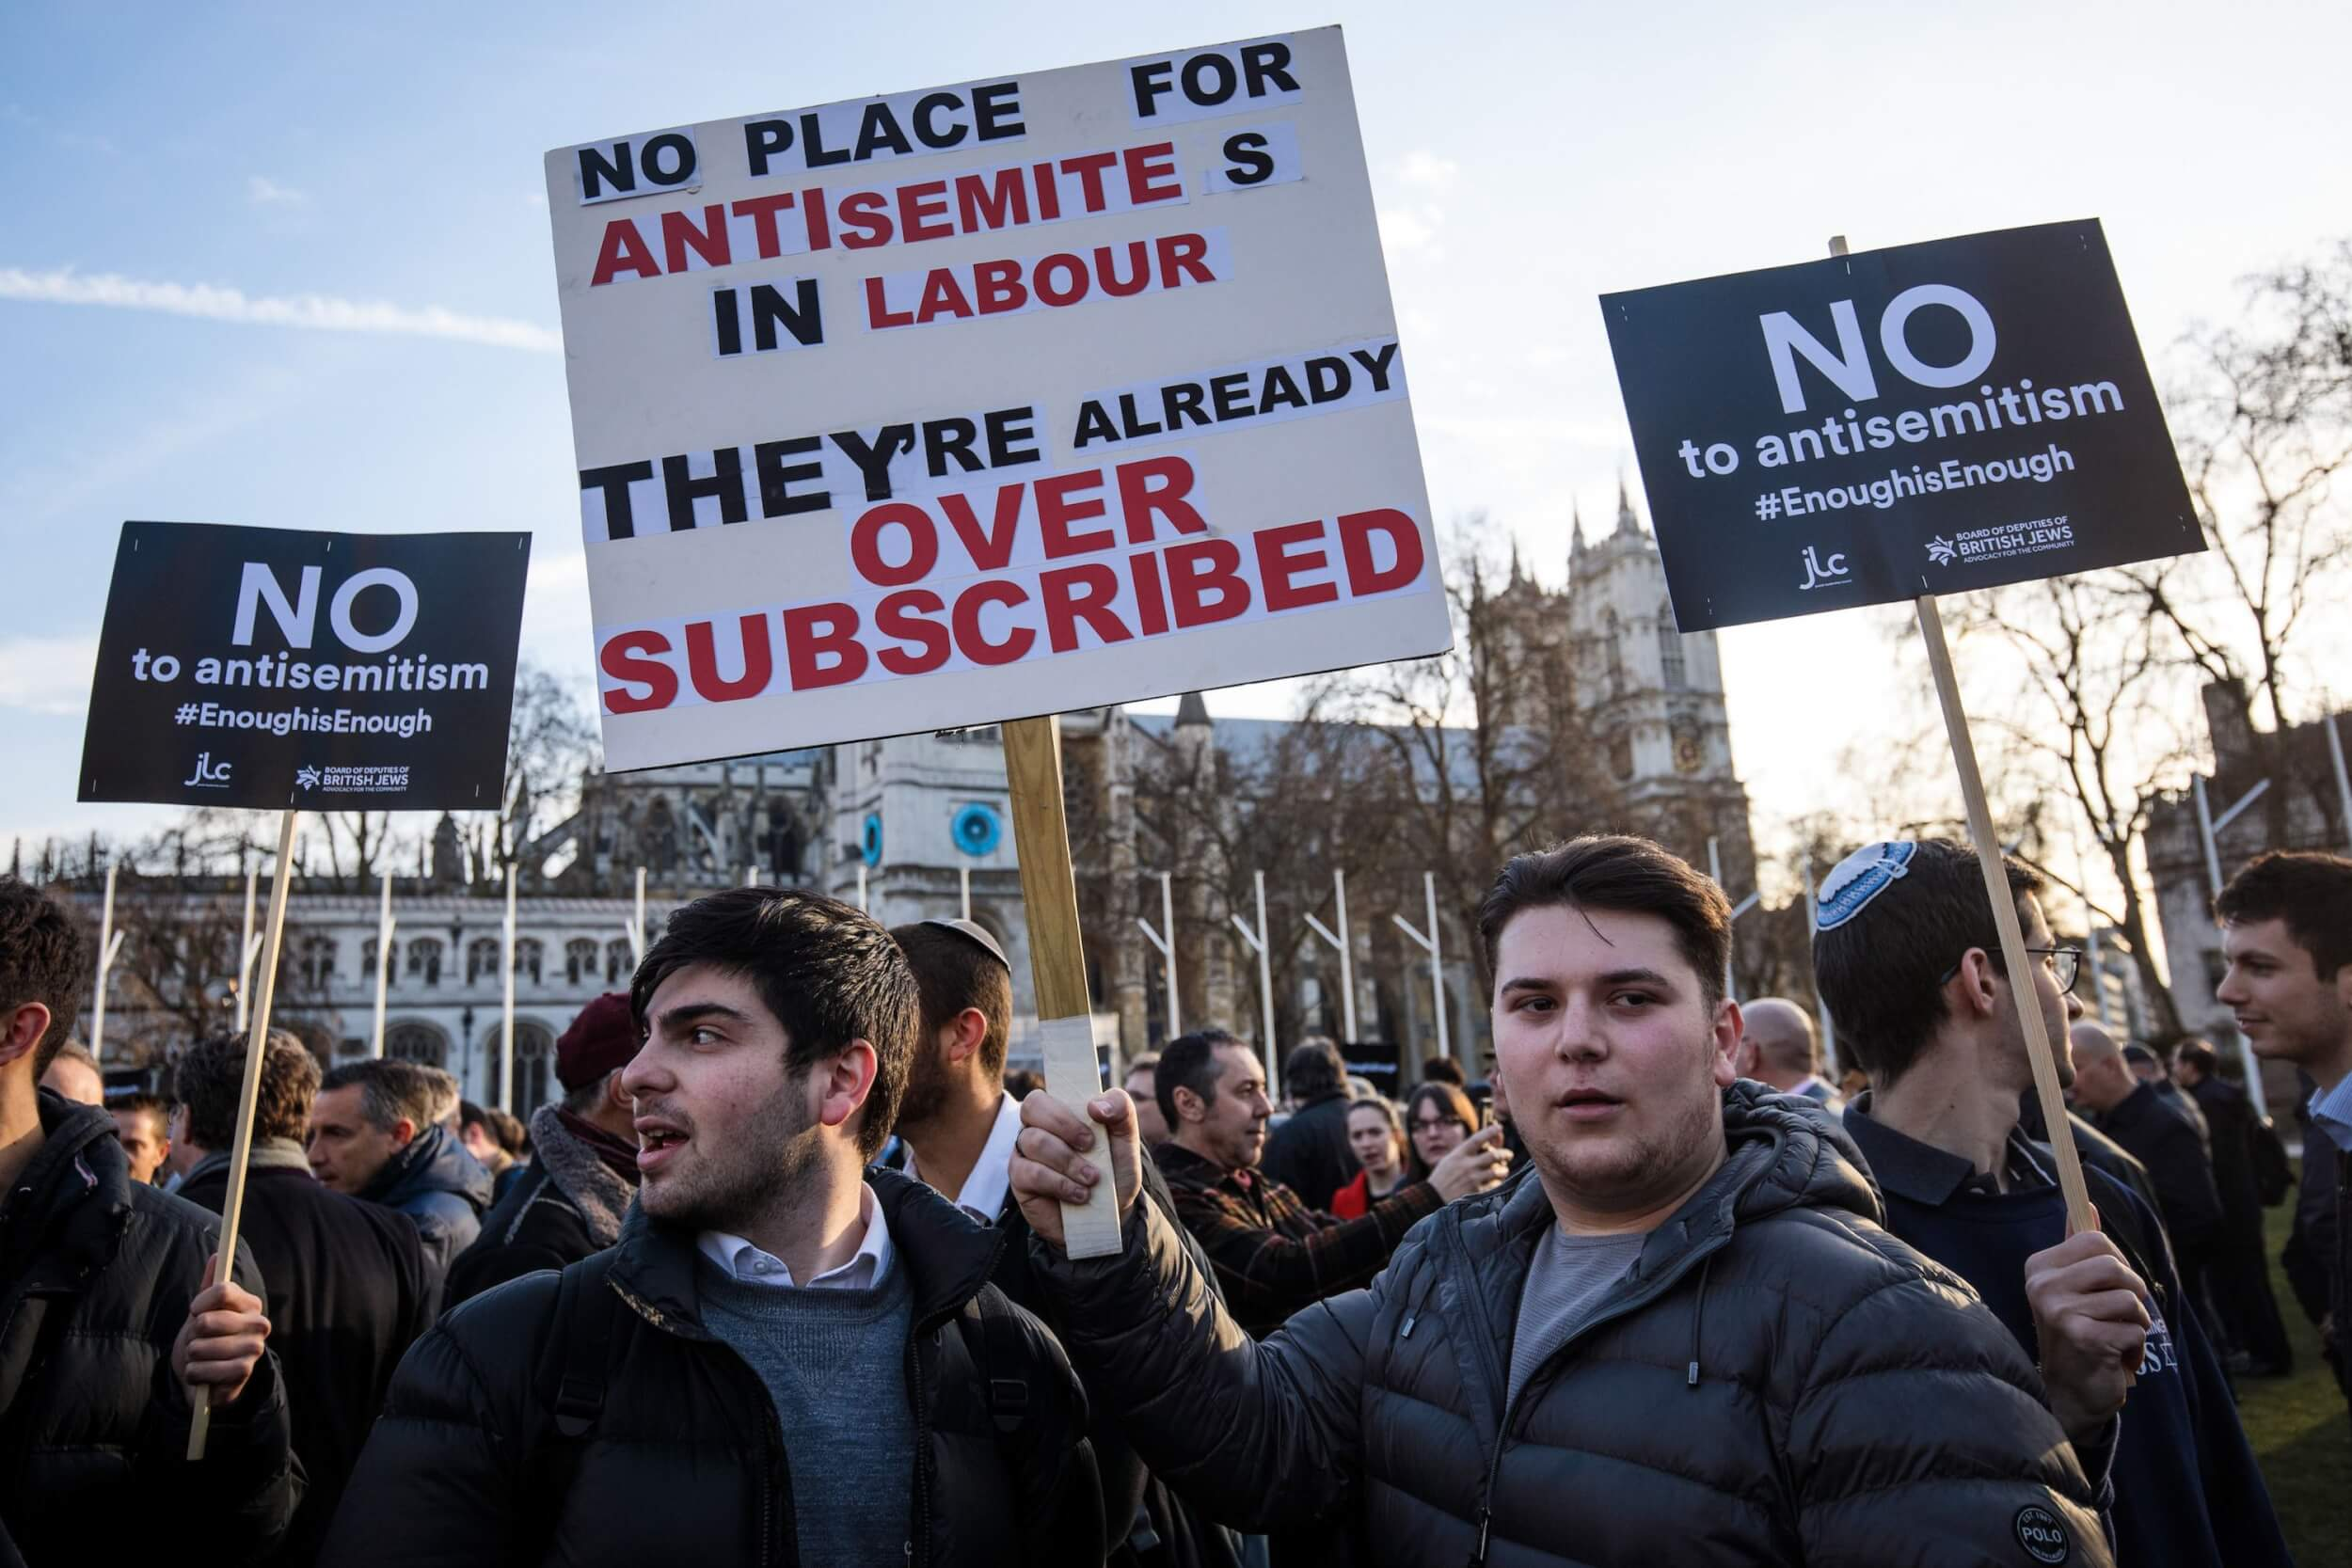 Smoke without fire: the myth of a 'Labour antisemitism crisis'